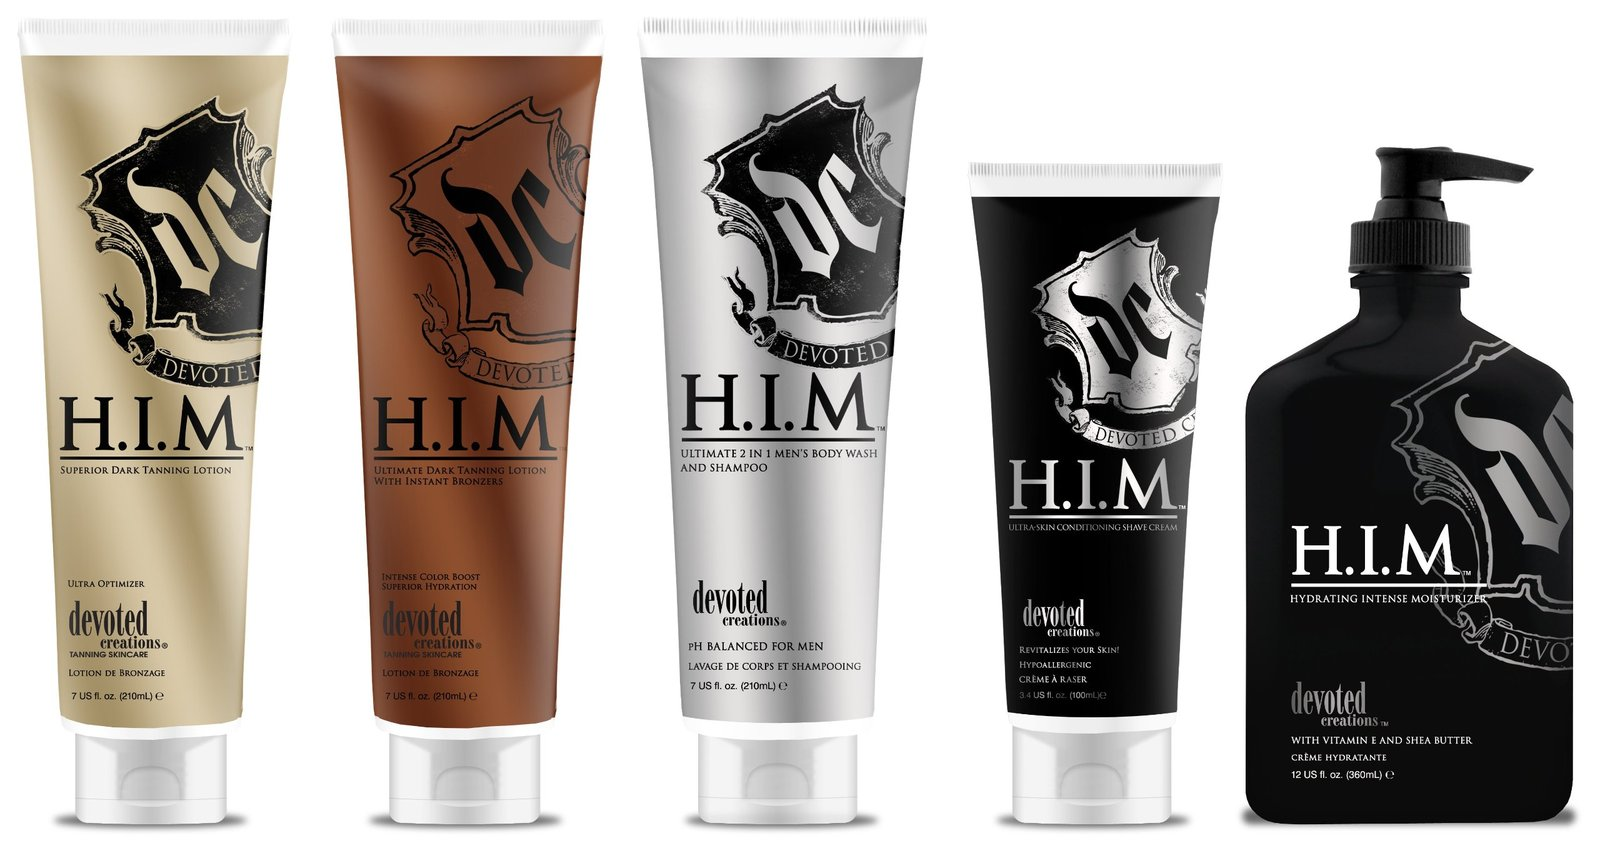 Brand New H.I.M. SHAVING CREAM by DEVOTED CREATIONS